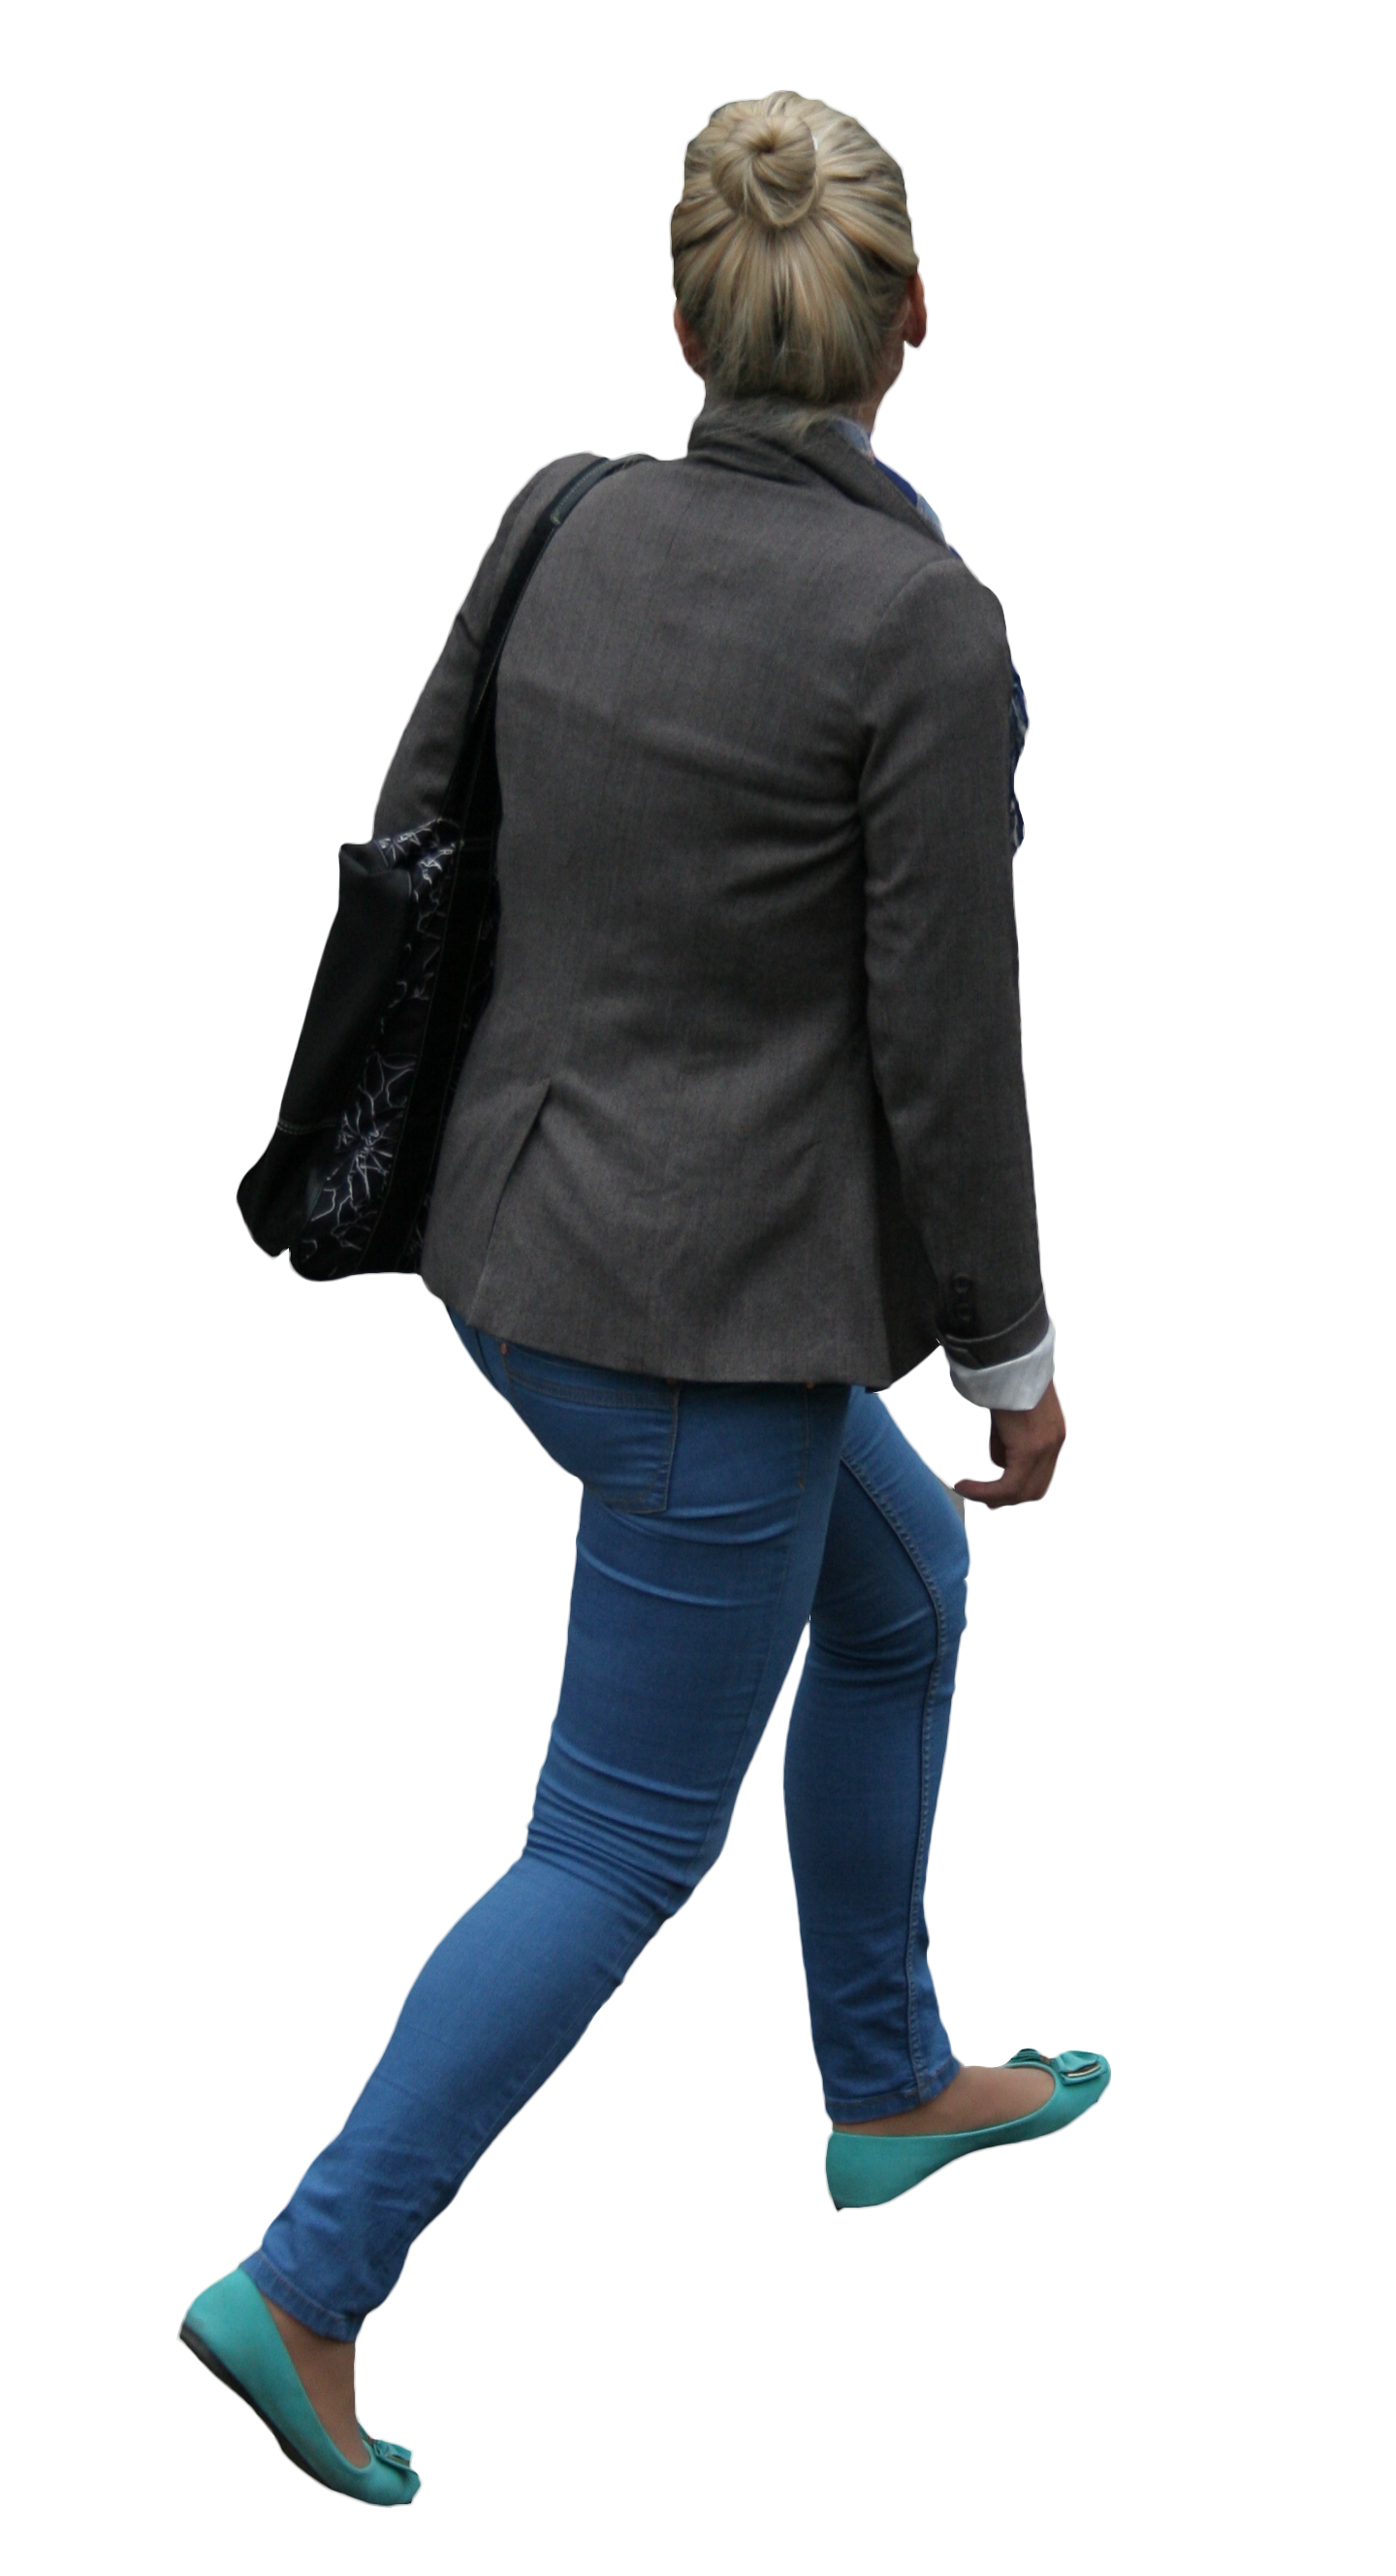 Casual people png. Woman free cut out